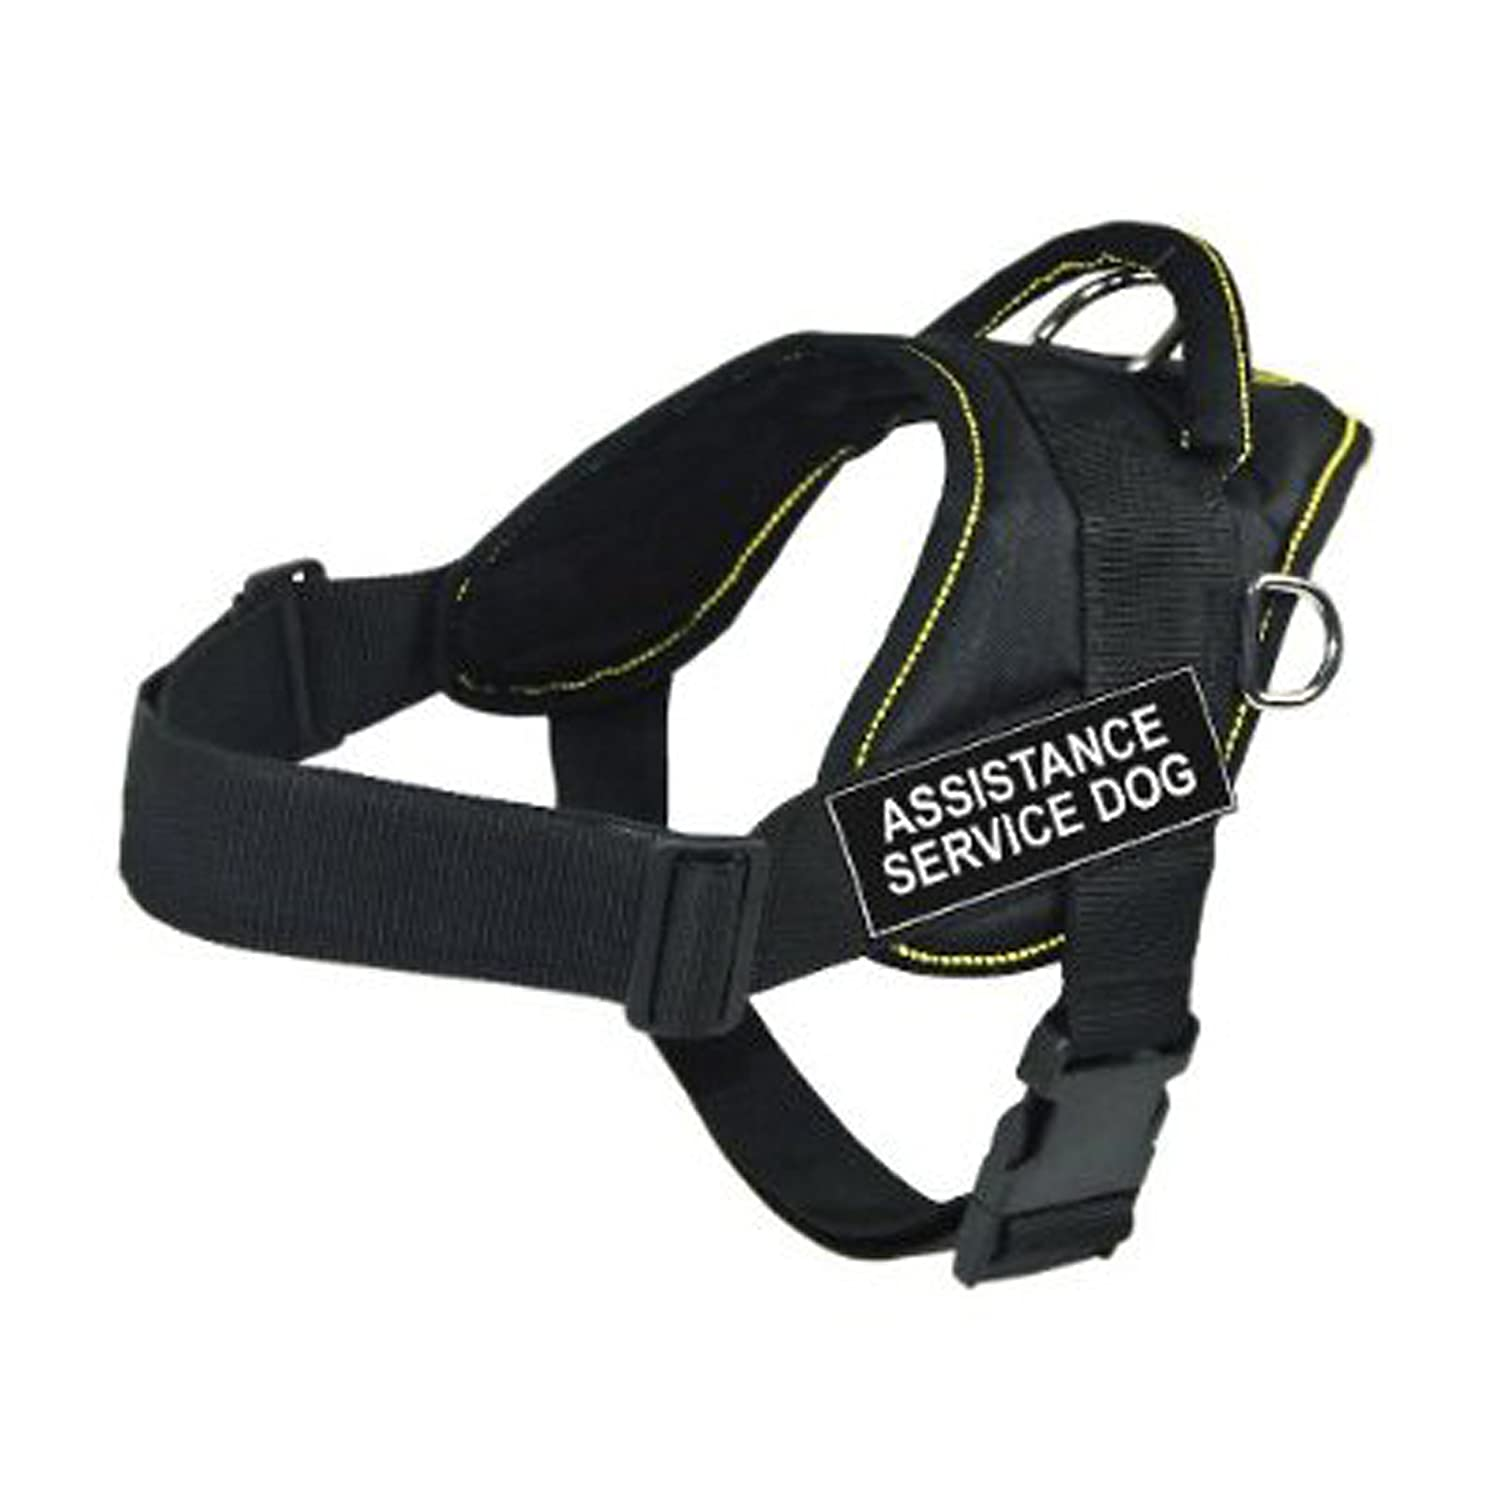 Dean & Tyler DT Fun Works Harness, Assistance Service Dog, Black With Yellow Trim, Large Fits Girth Size  32-Inch to 42-Inch